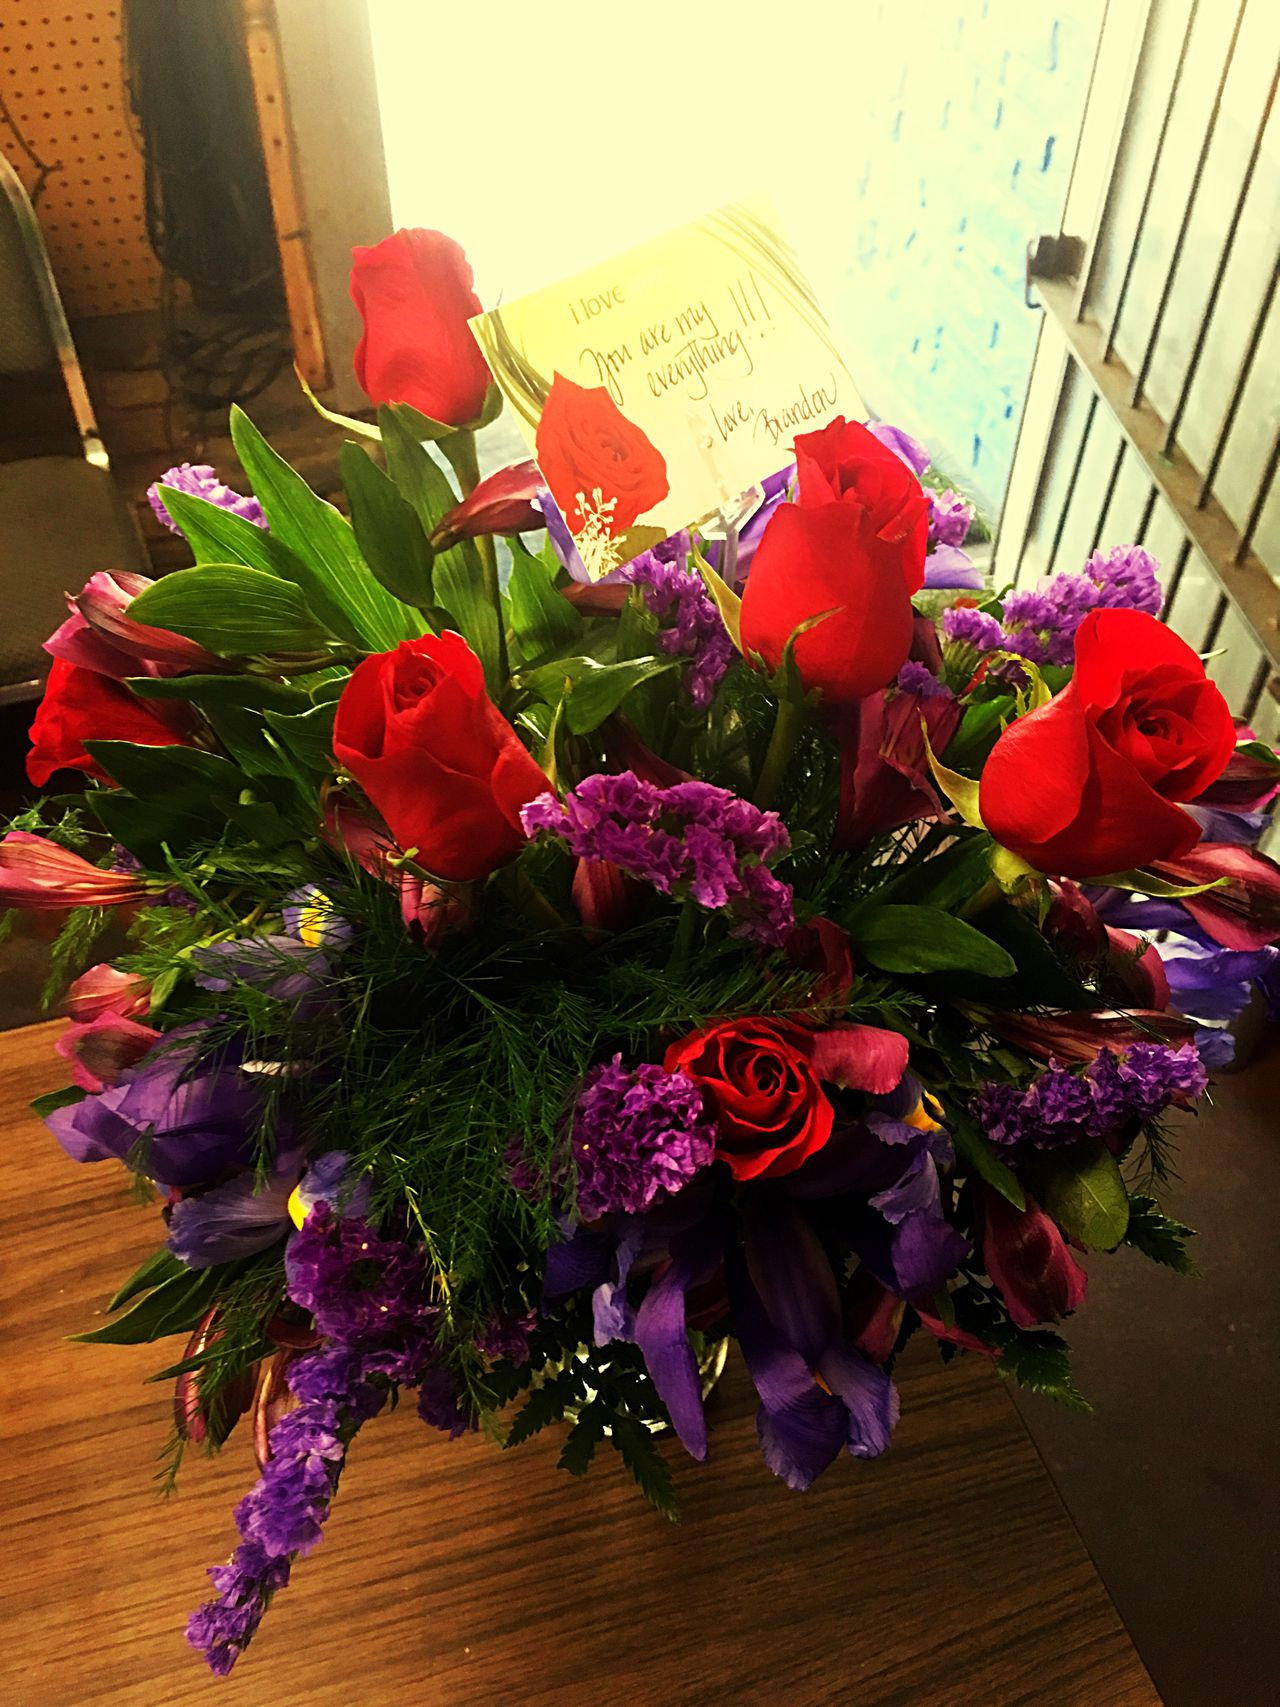 Thanks To My Husband Brandon Payne Sending Me Flowers To My Work Place 😘 Love You So Much!